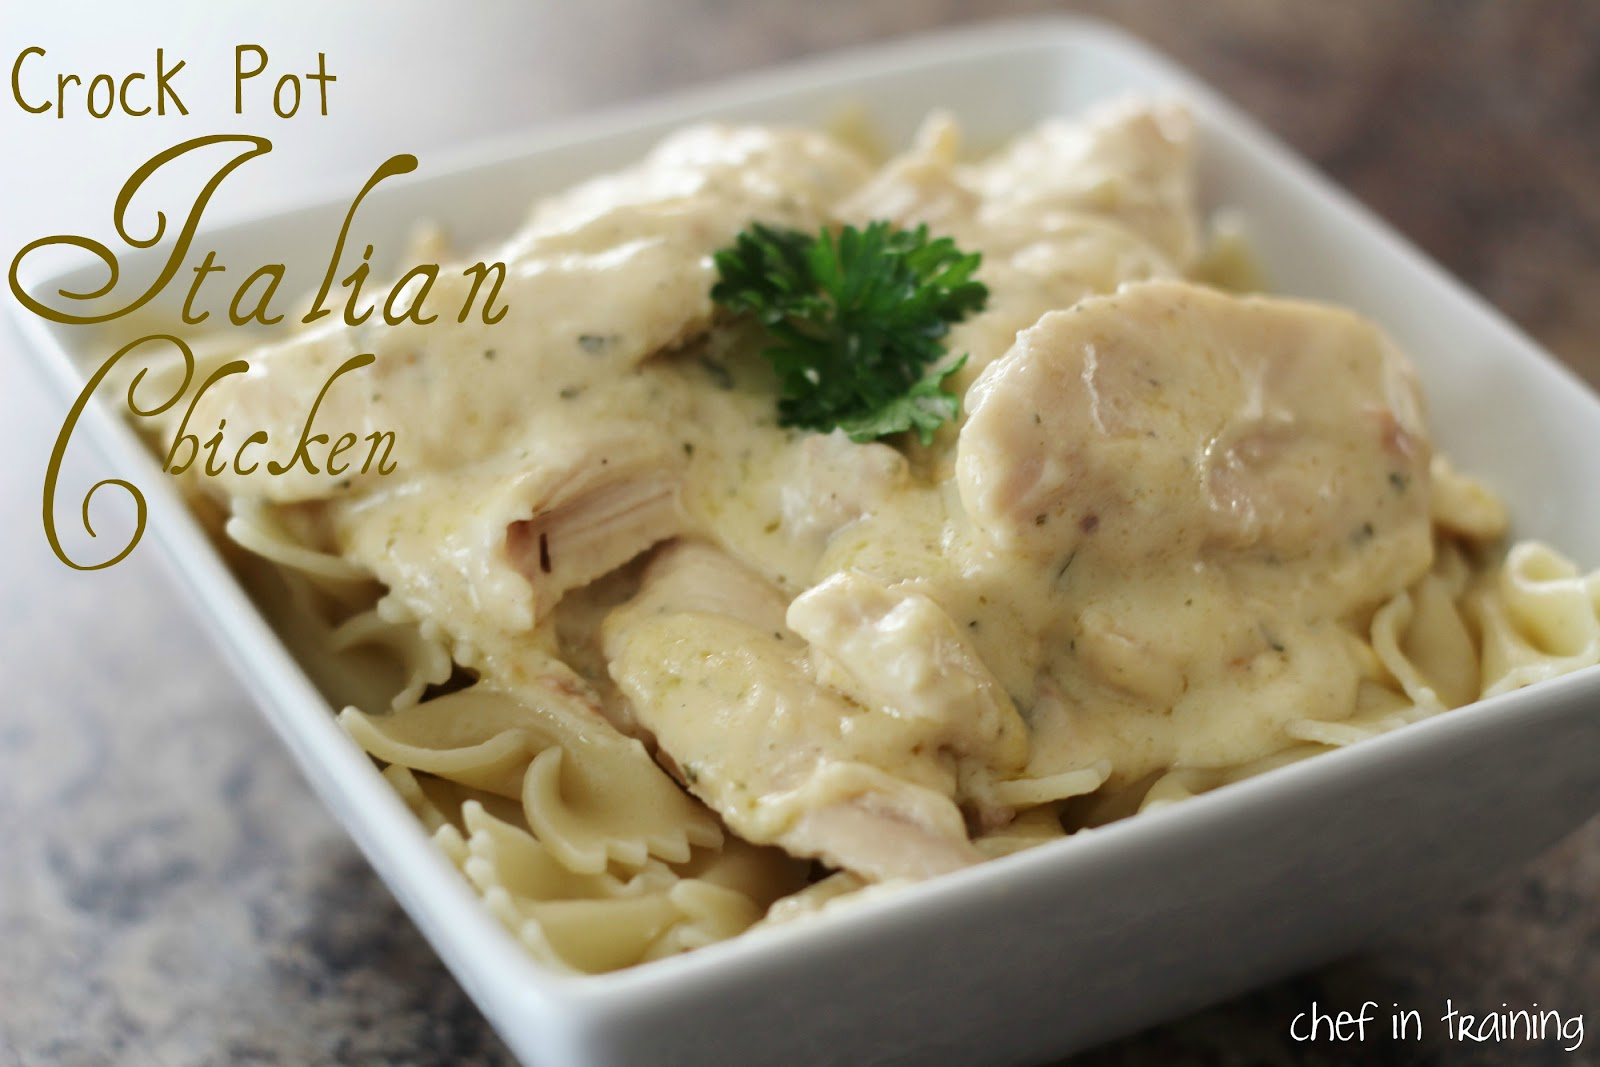 Chicken breast and pasta crock pot recipes